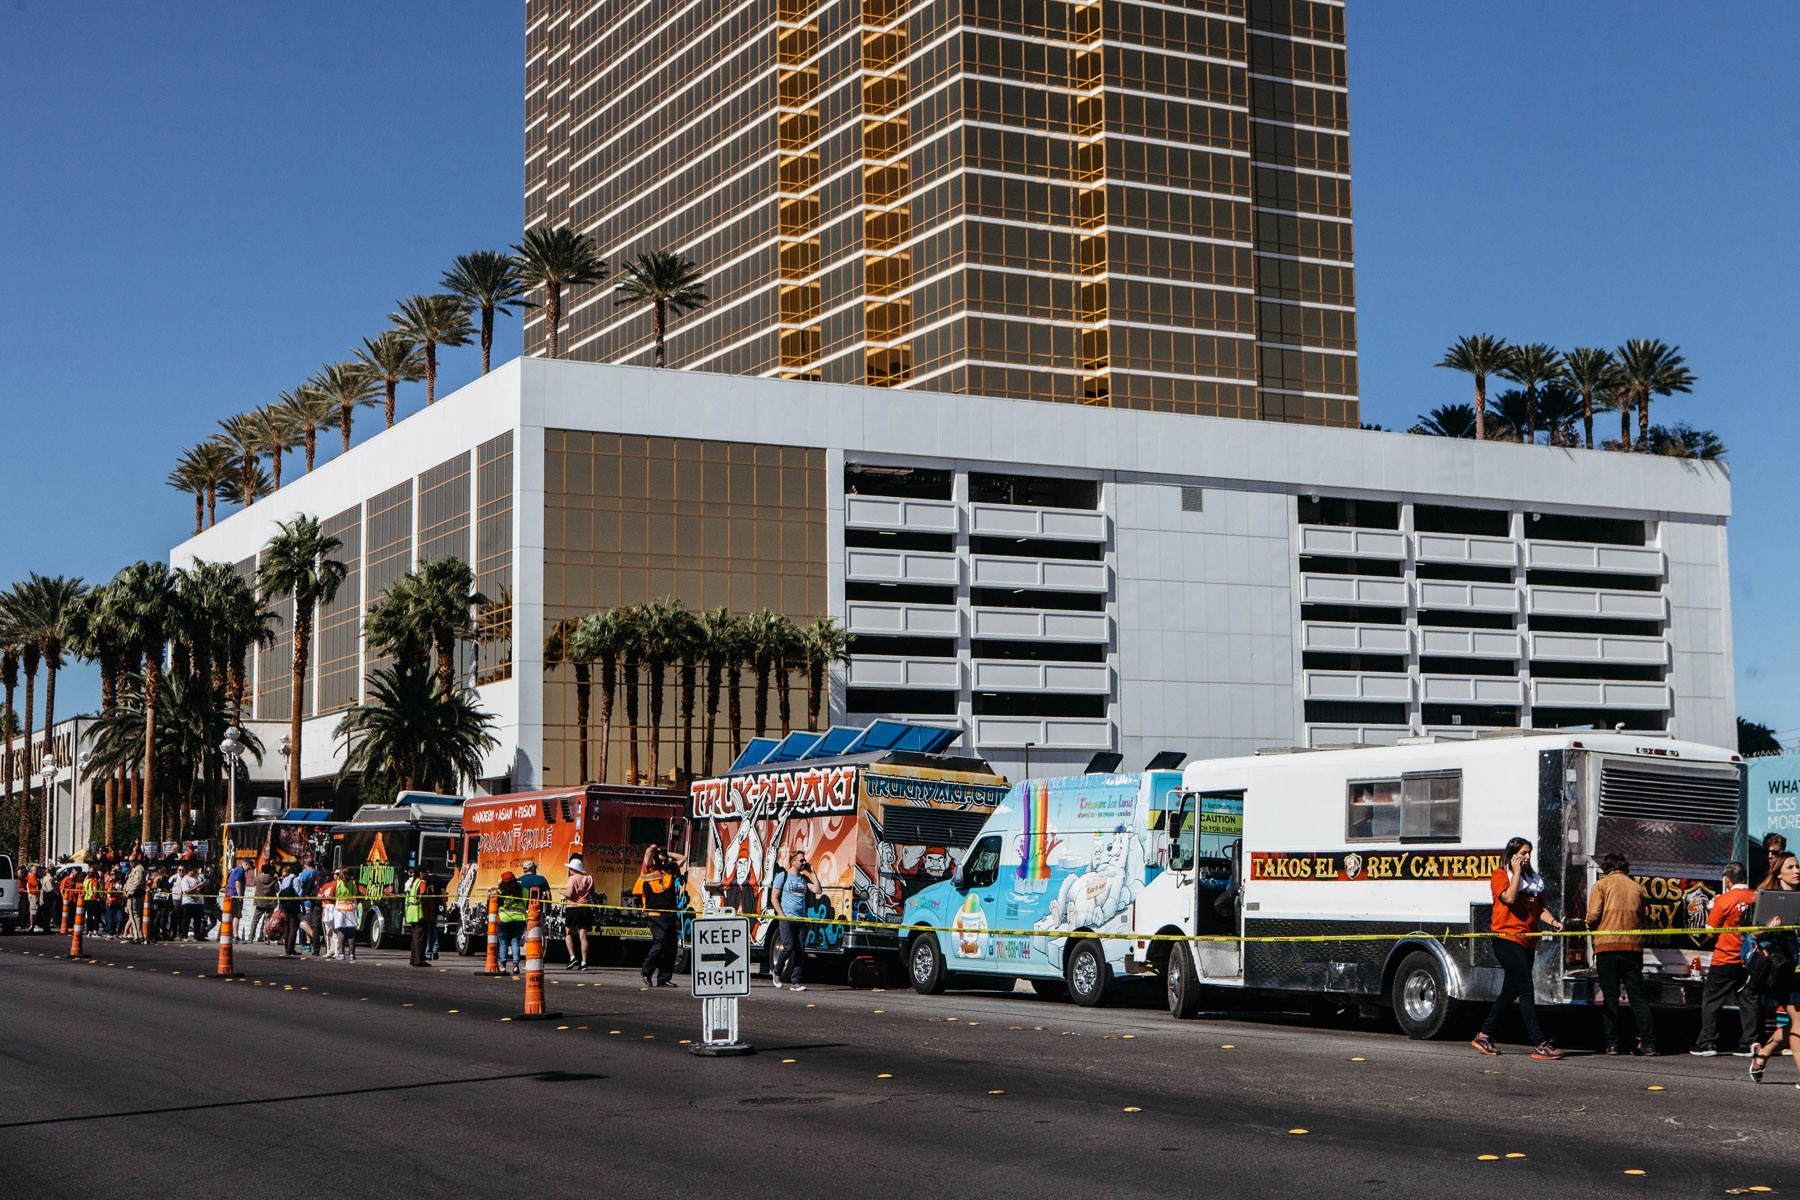 Taco trucks line up outside of Trump Tower in Las Vegas to build a wall.